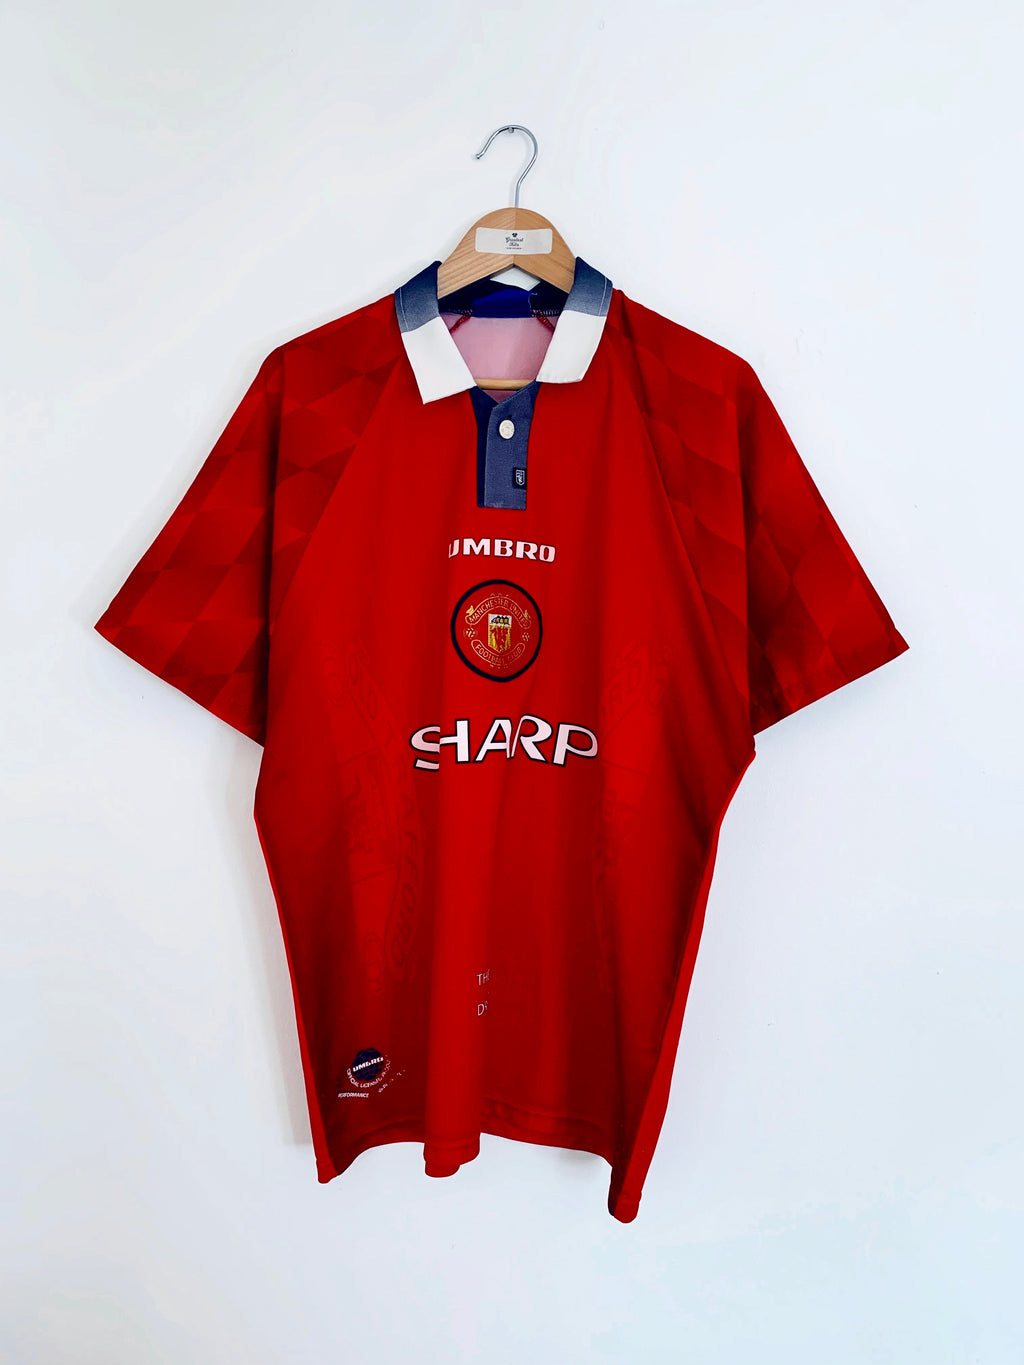 1996/98 Manchester United Home Shirt (L) 5.5/10